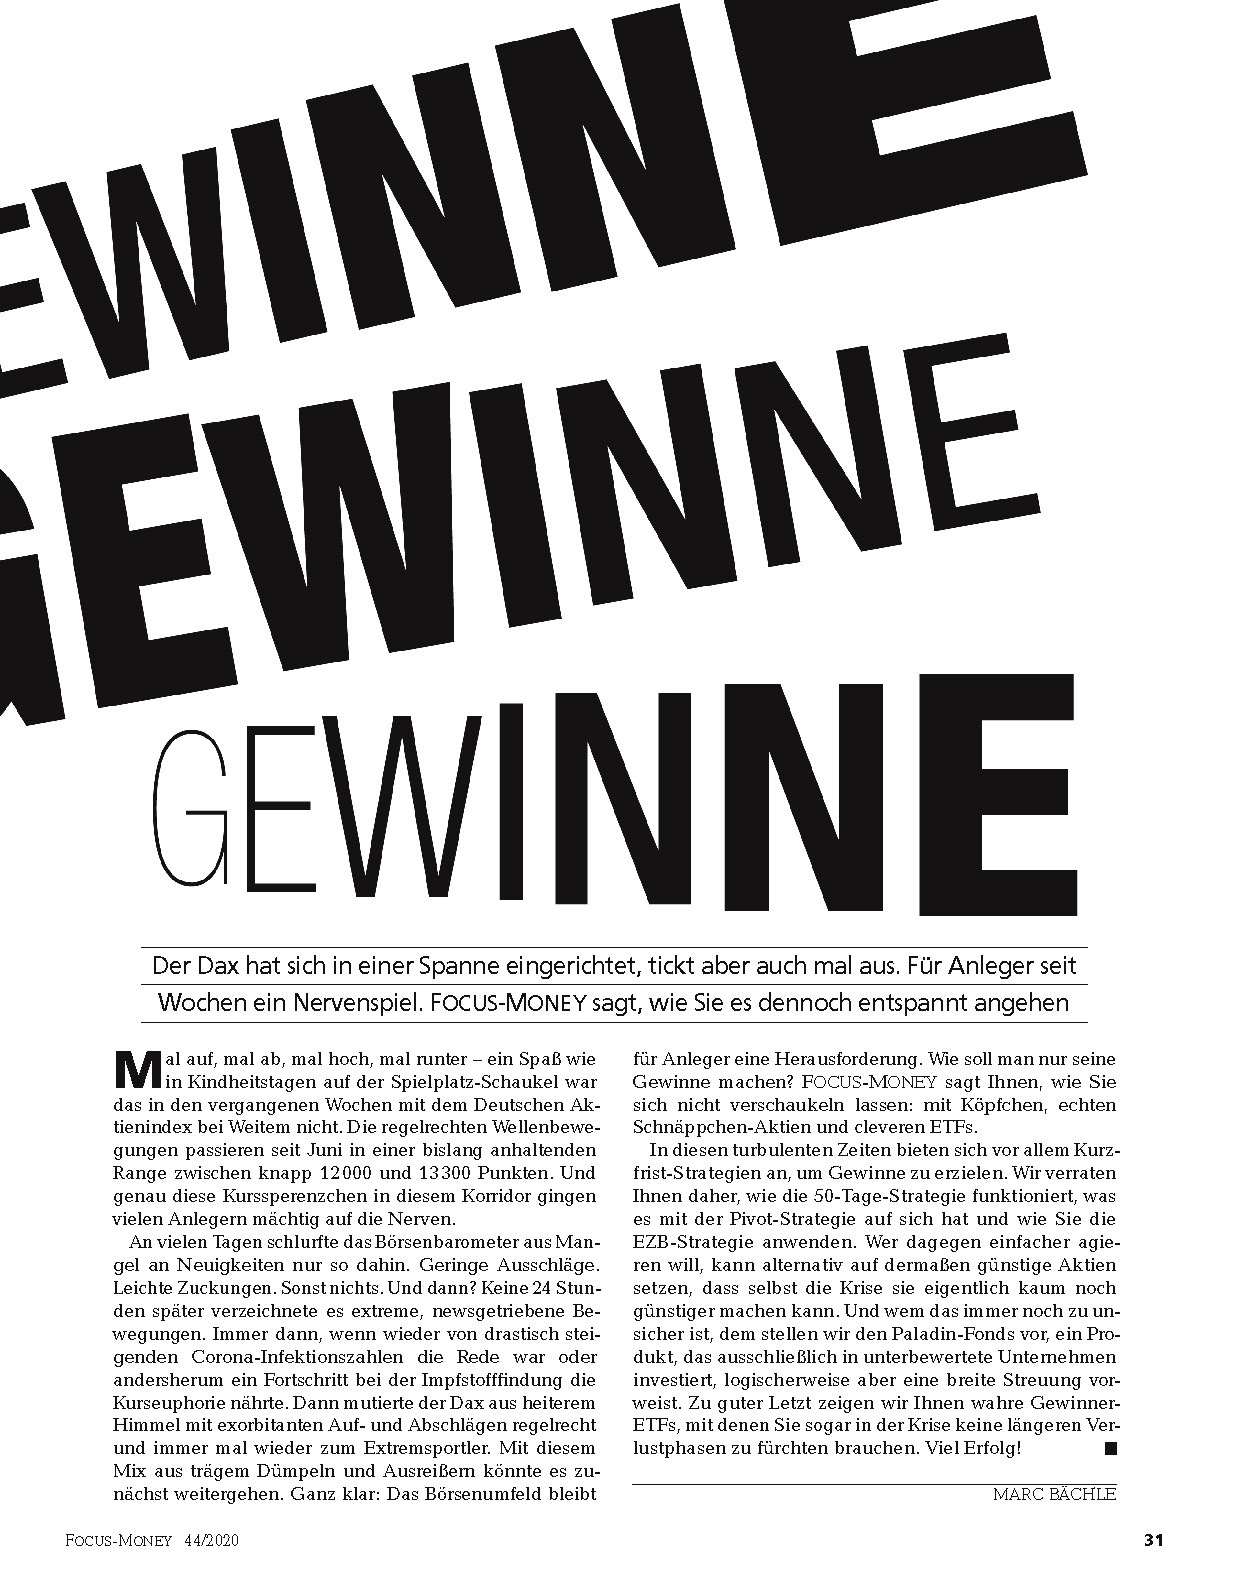 FOCUS-MONEY FOCUS MONEY – Gewinne, Gewinne, Gewinne